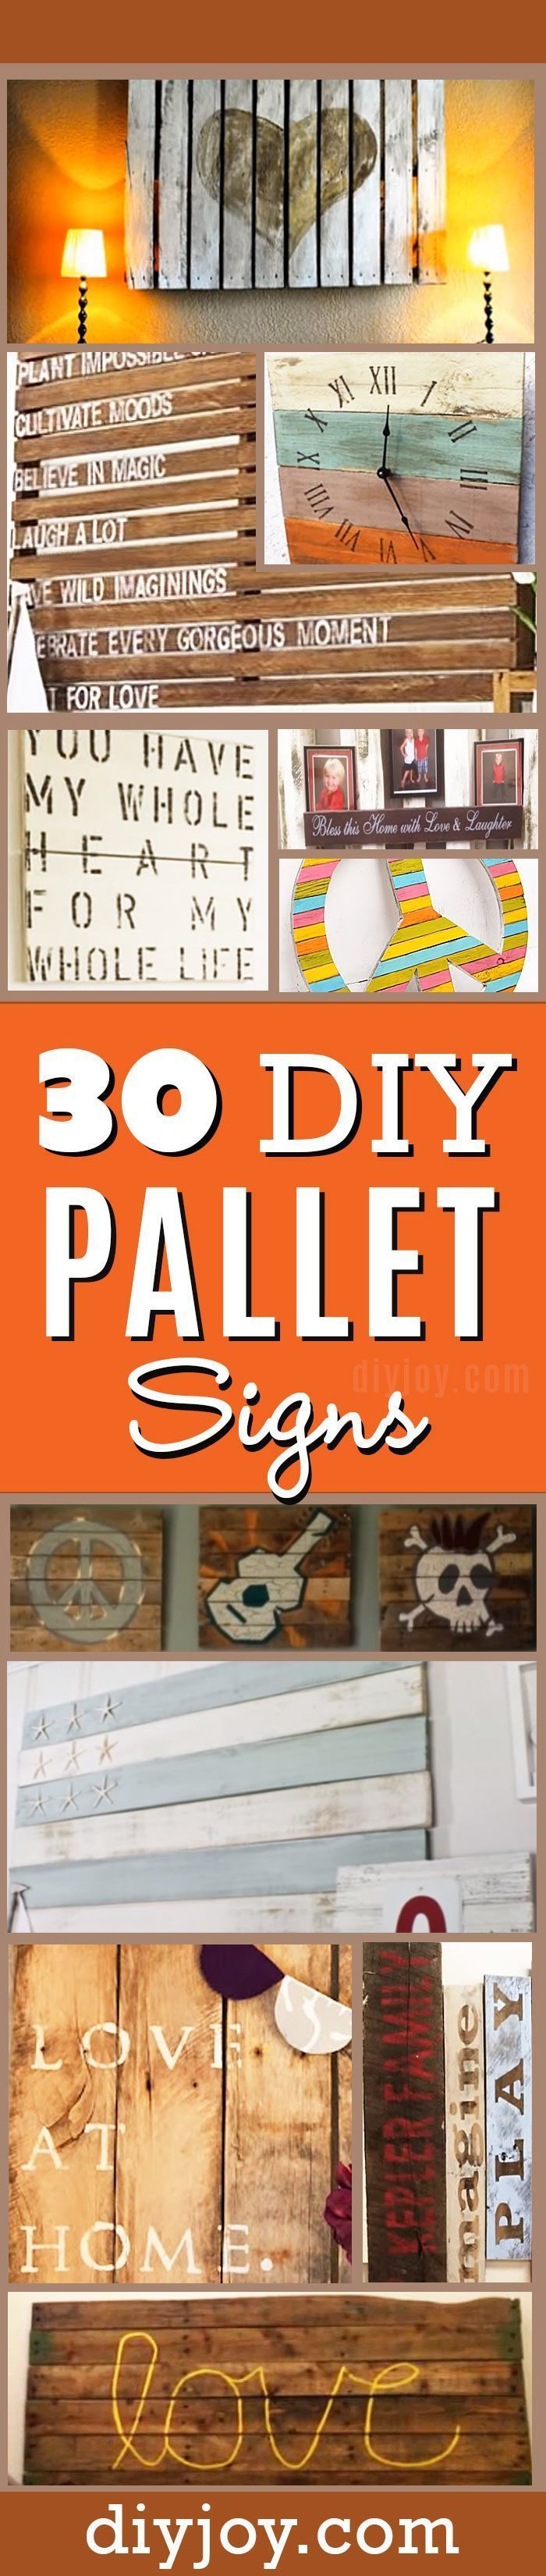 Wooden pallet craft projects - 30 Rustic Diy Wood Pallet Art Ideas Your Walls Absolutely Need